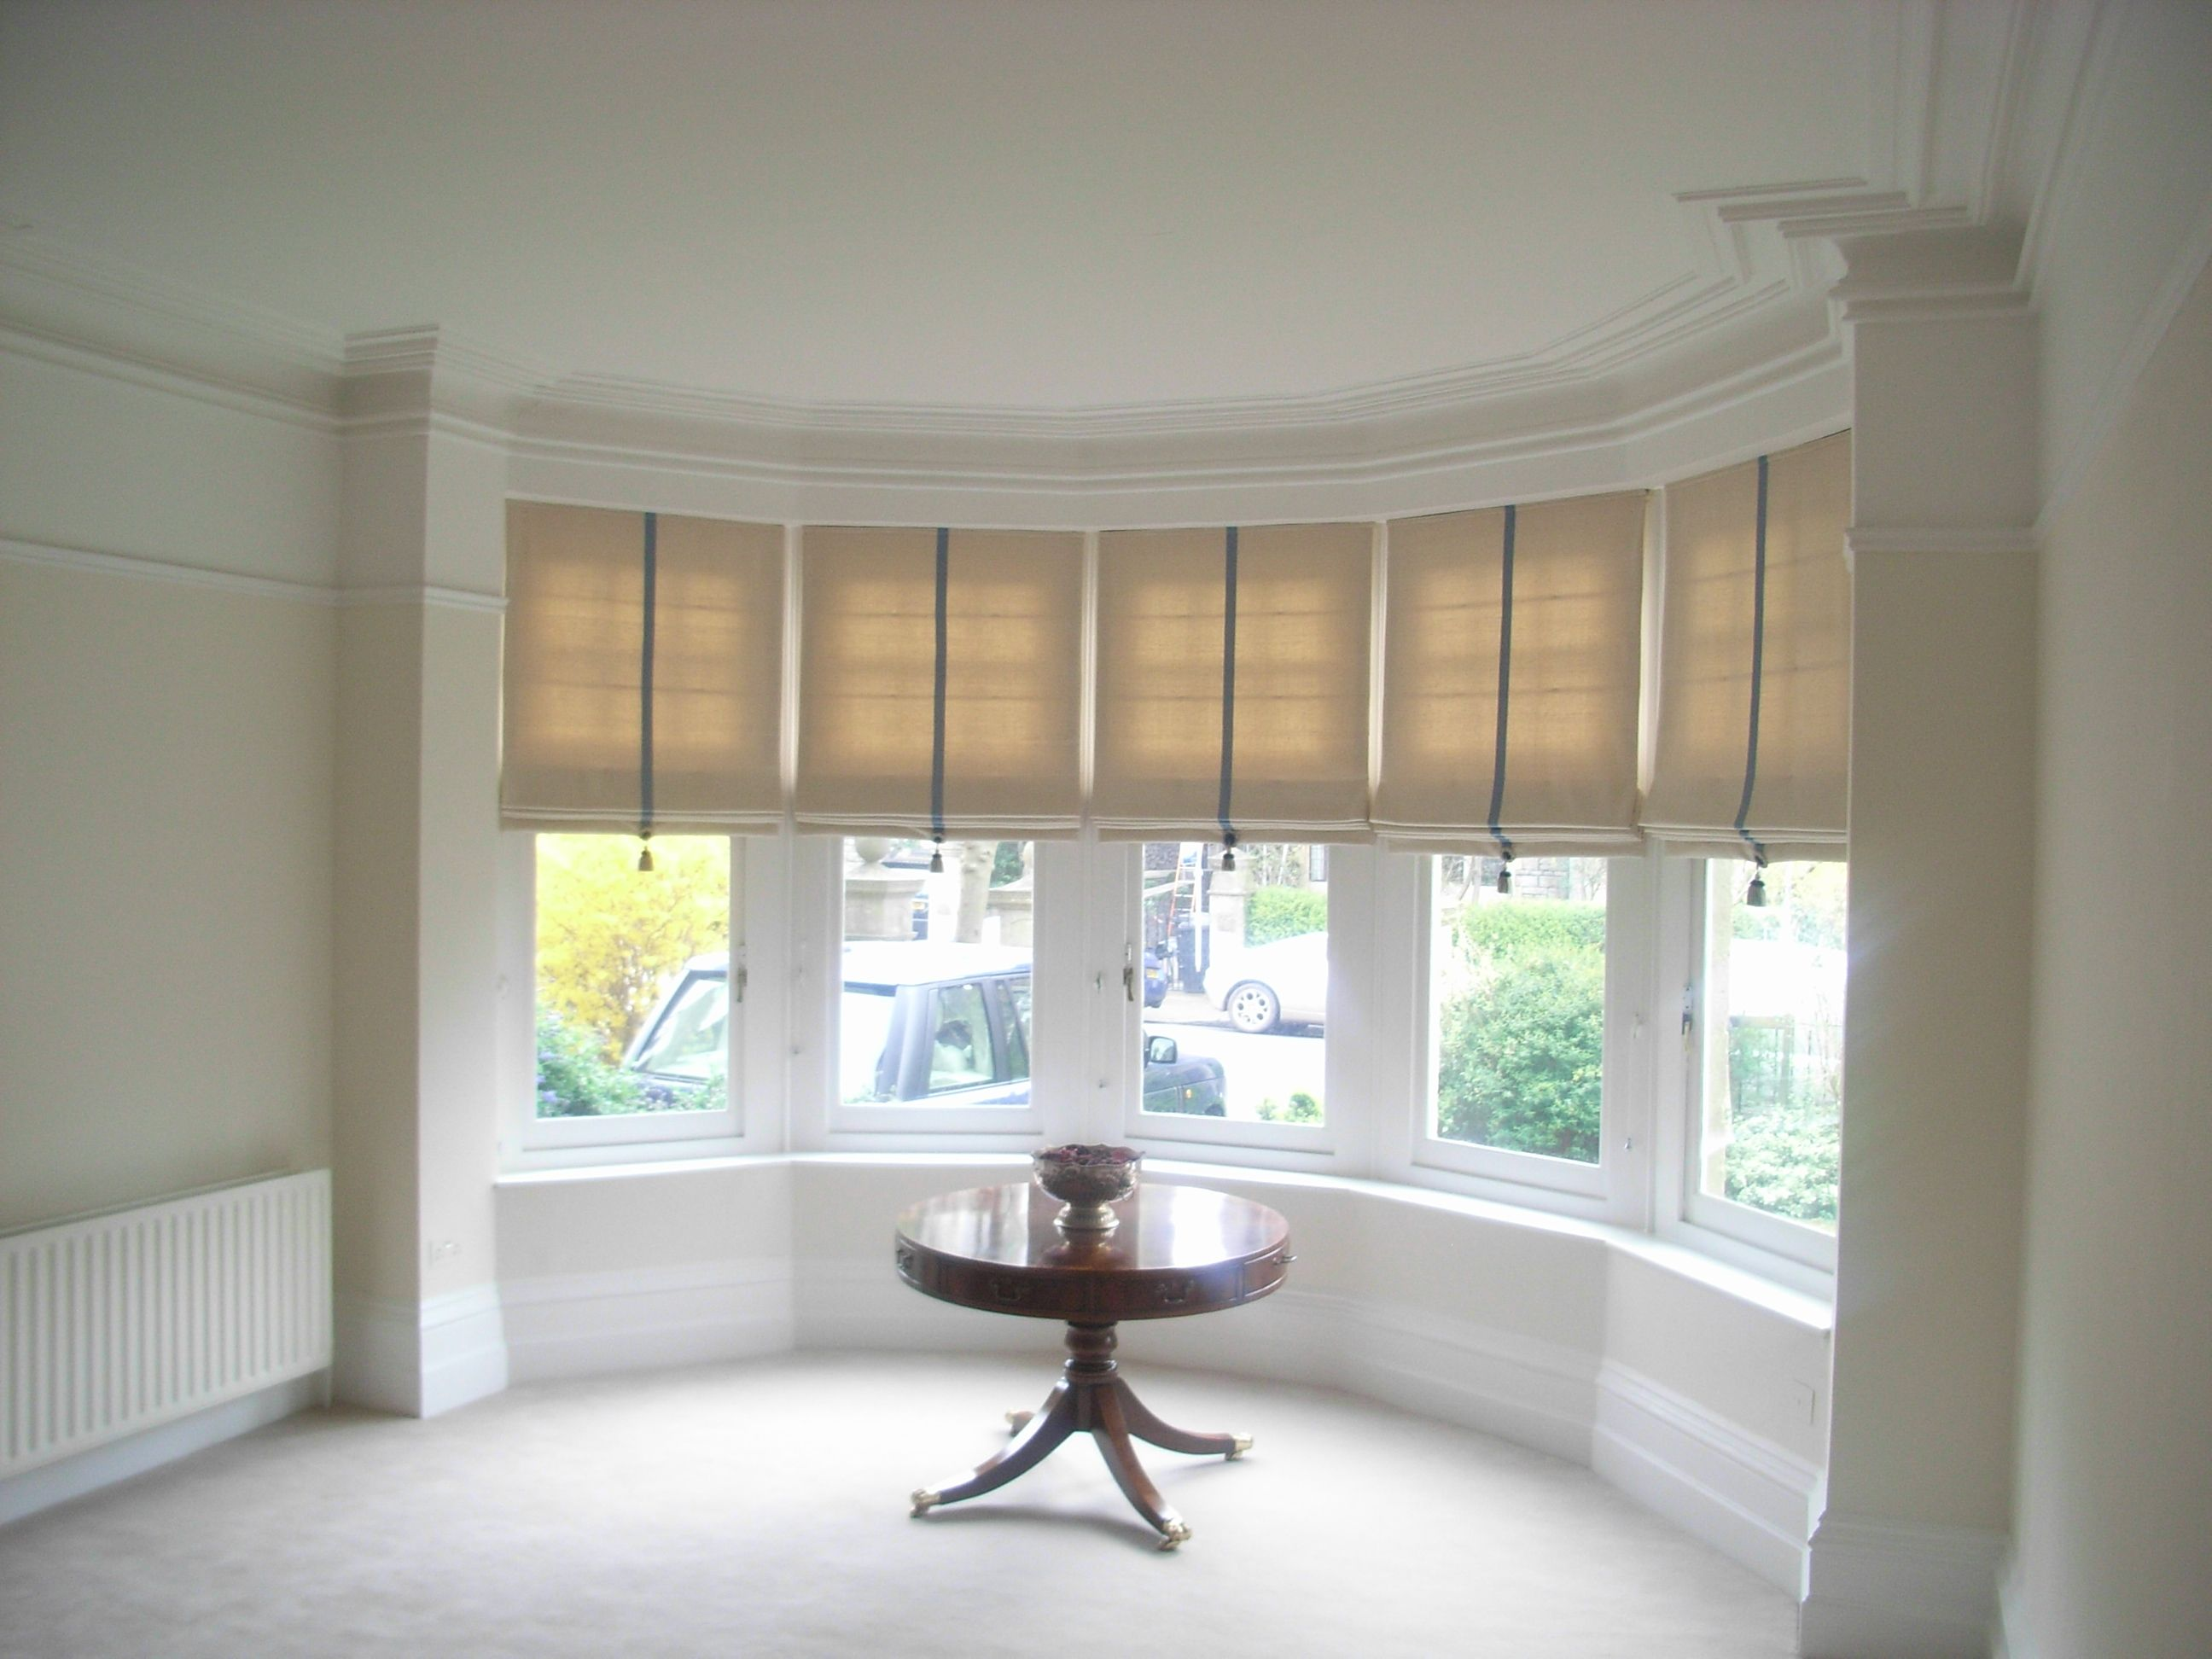 Best Curtains Designs U2013 Accessories   Interior Design   Do You Want To Put  A Substantial Touch Of Elegance On Your Design? The Use Of Curtains In The  Best ...